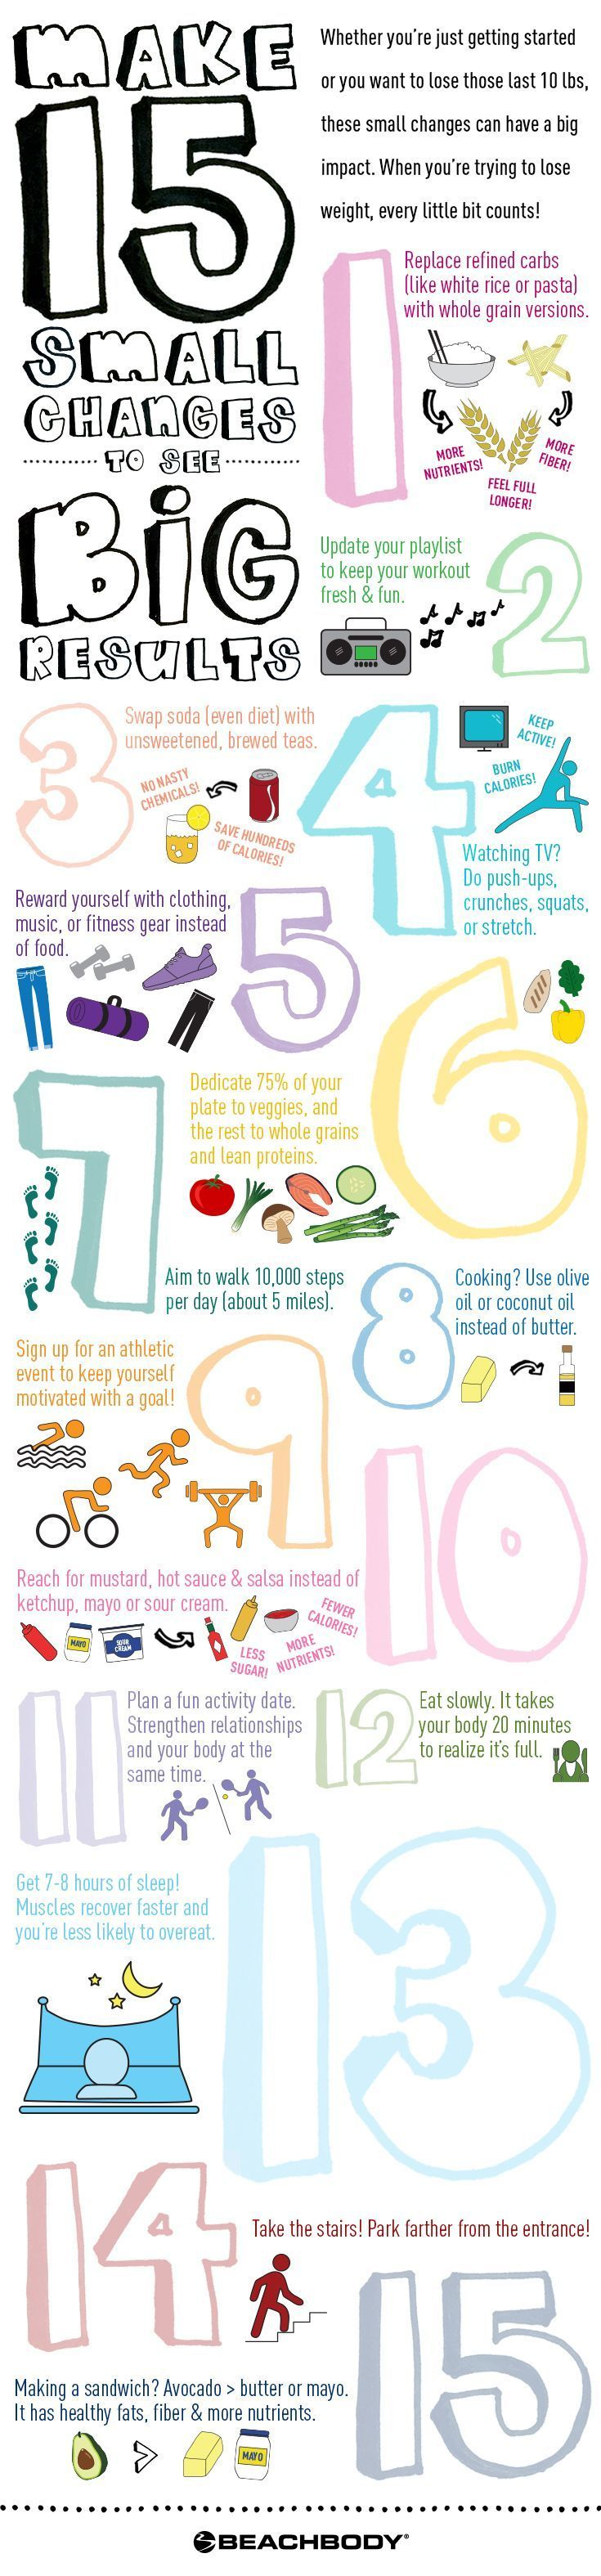 Whether you're just getting started on your fitness journey or you're trying to lose those last few pounds, these little changes that can have a big impact on creating a healthier life. And they're simple to incorporate into your daily routine! // fitness // nutrition // weight loss // diet // tips // beginner // new year // changes // resolution // lose weight // eat healthy // Beachbody